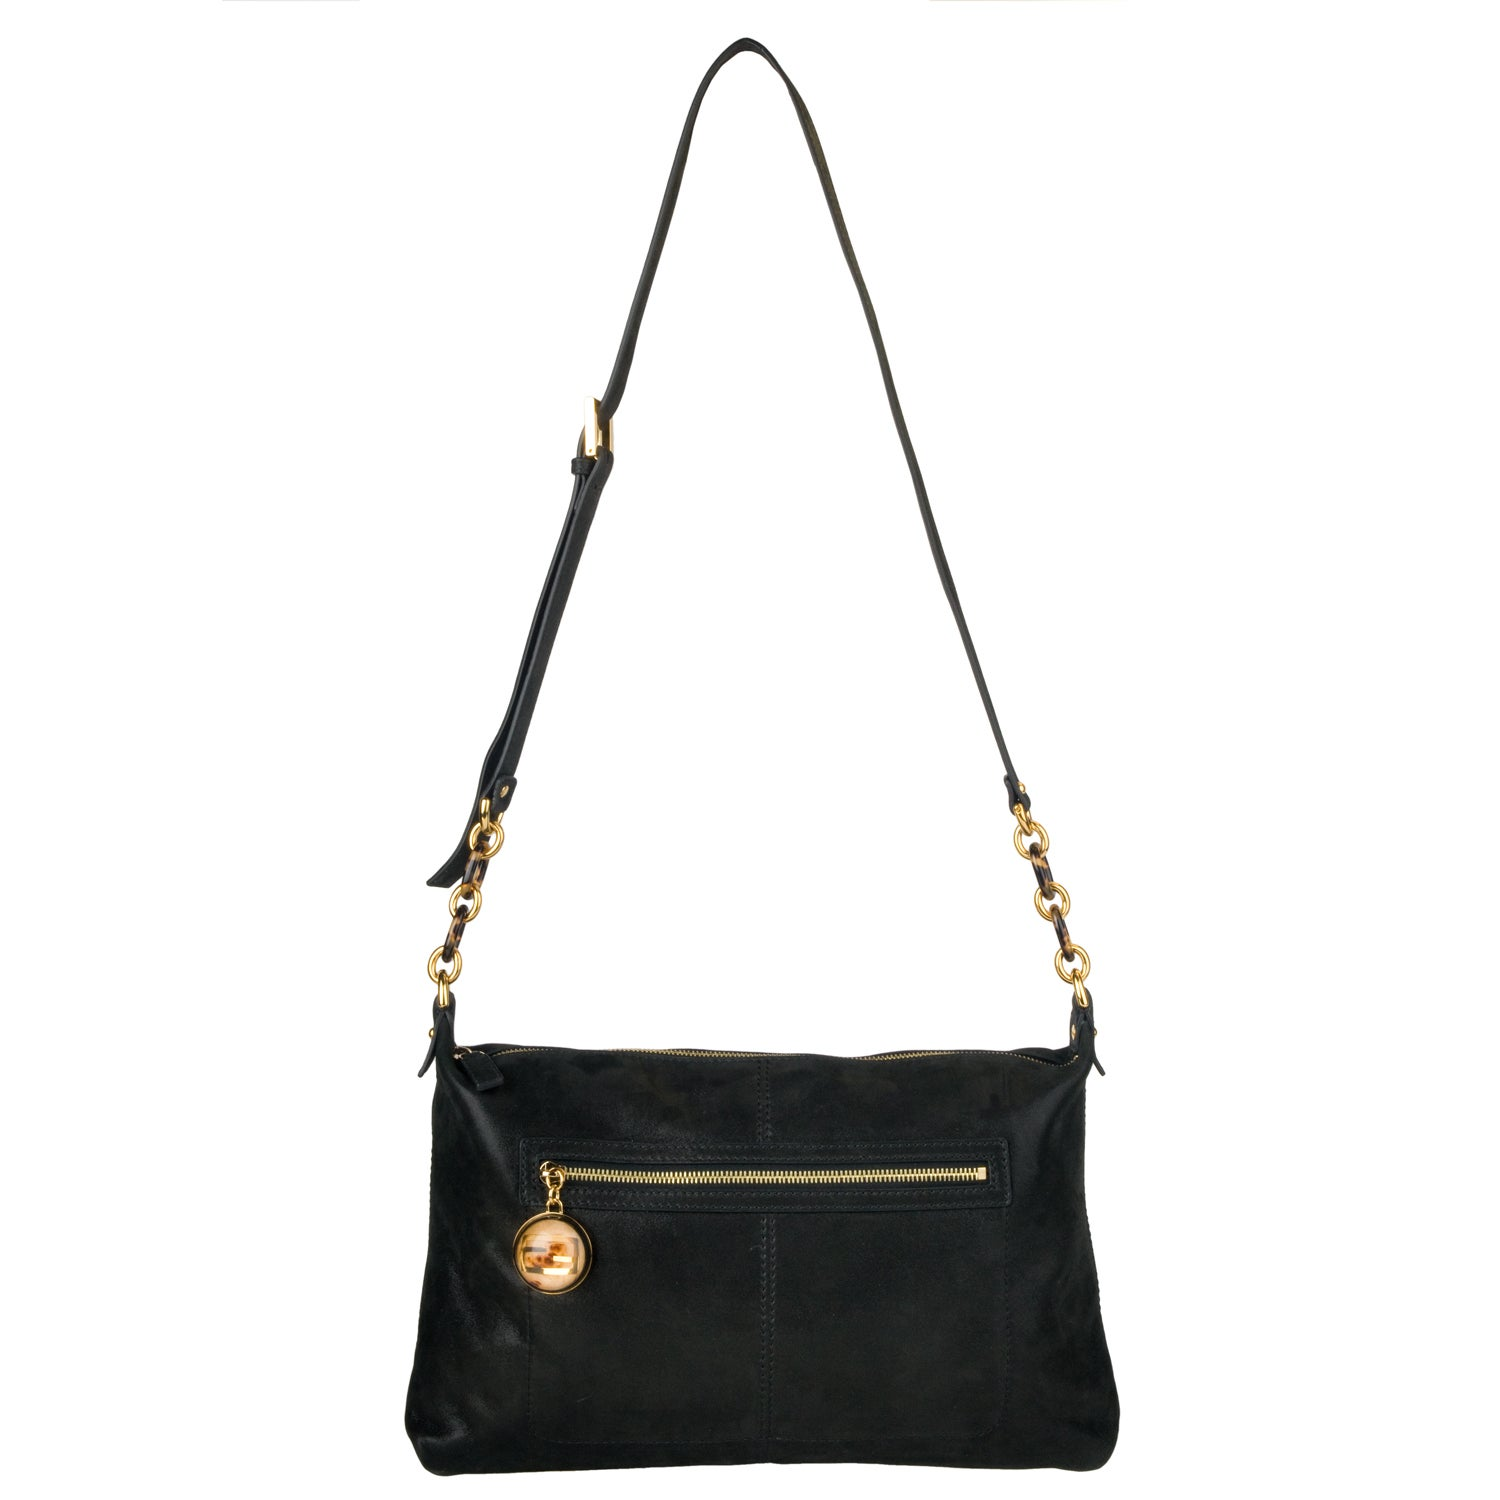 Fendi Women's Black Suede Forever Crossbody Bag